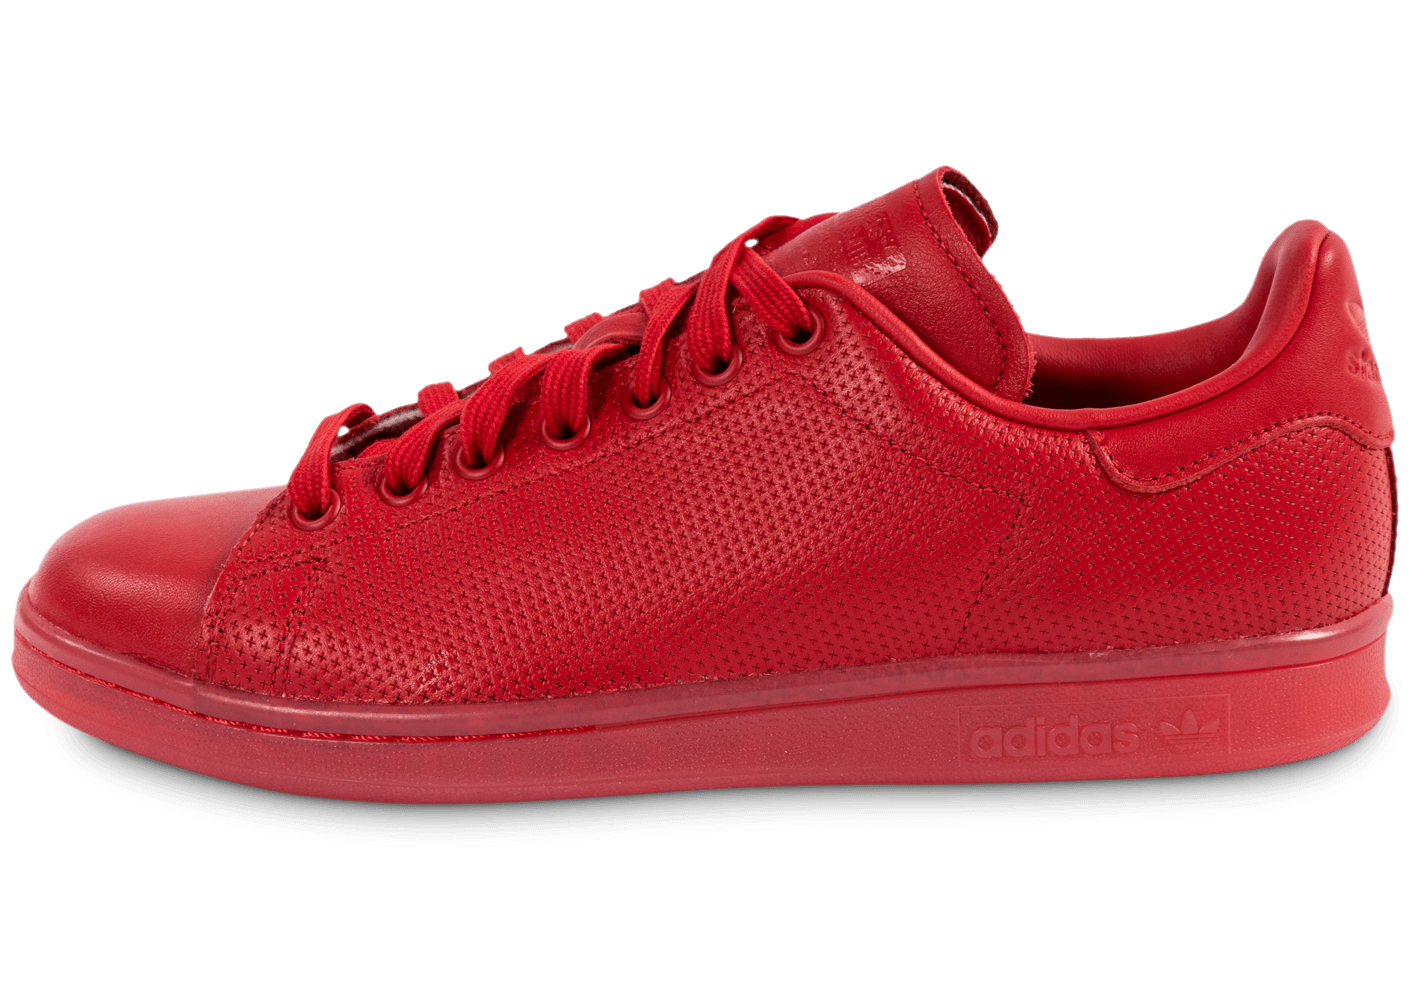 adidas stan smith cuir rouge